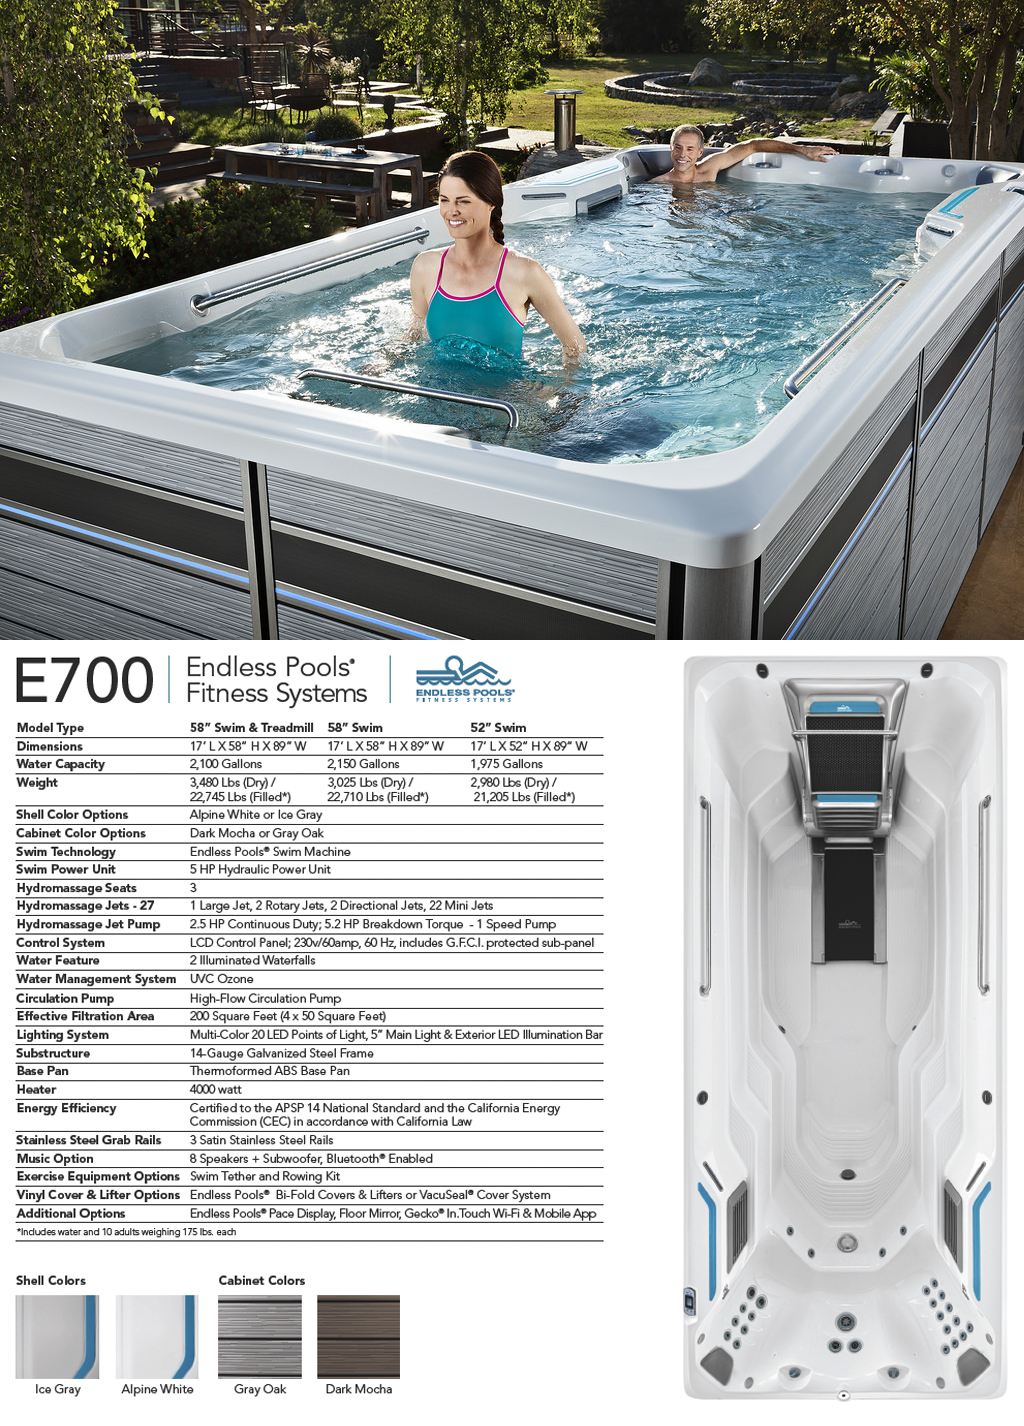 E700 Endless Pools Fitness System